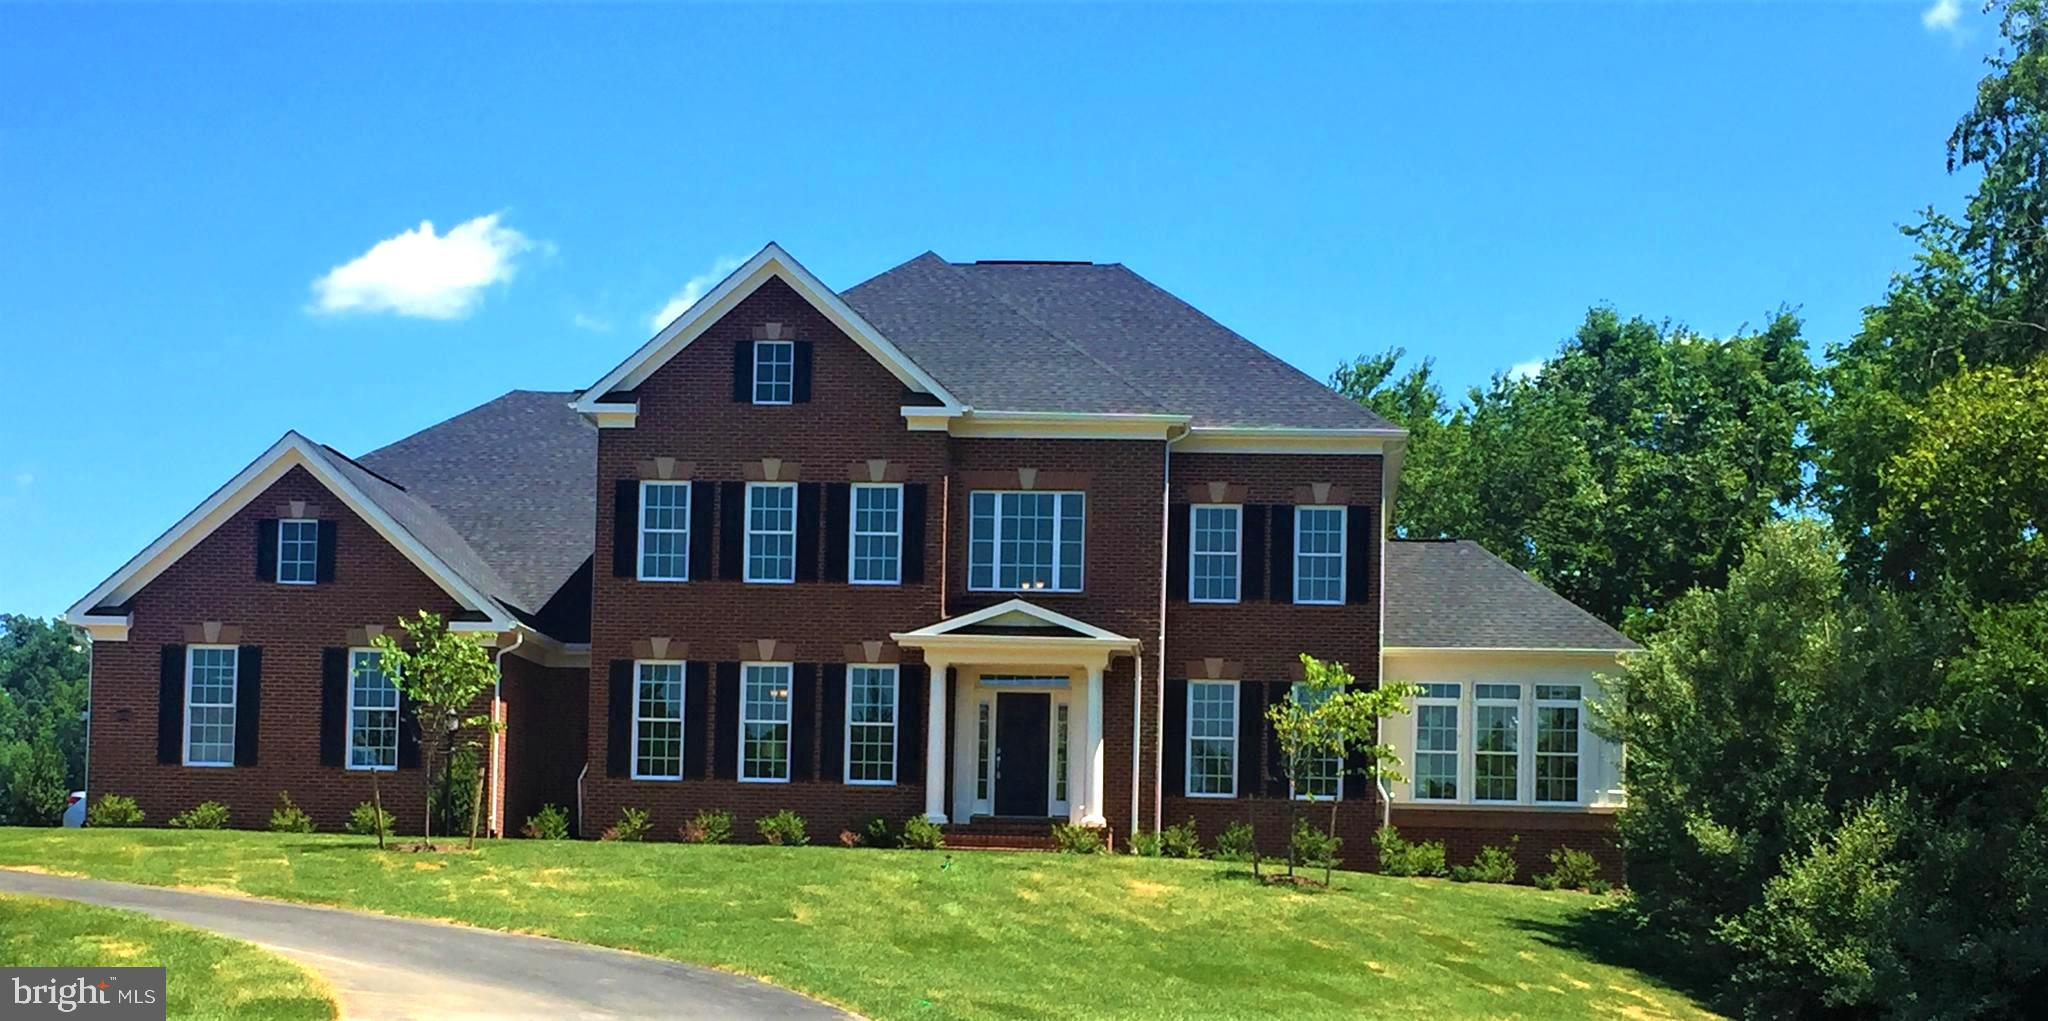 UNDER CONSTRUCTION by CarrHomes on gorgeous wooded 3 acre homesite. This Oakton plan has over 6200 s